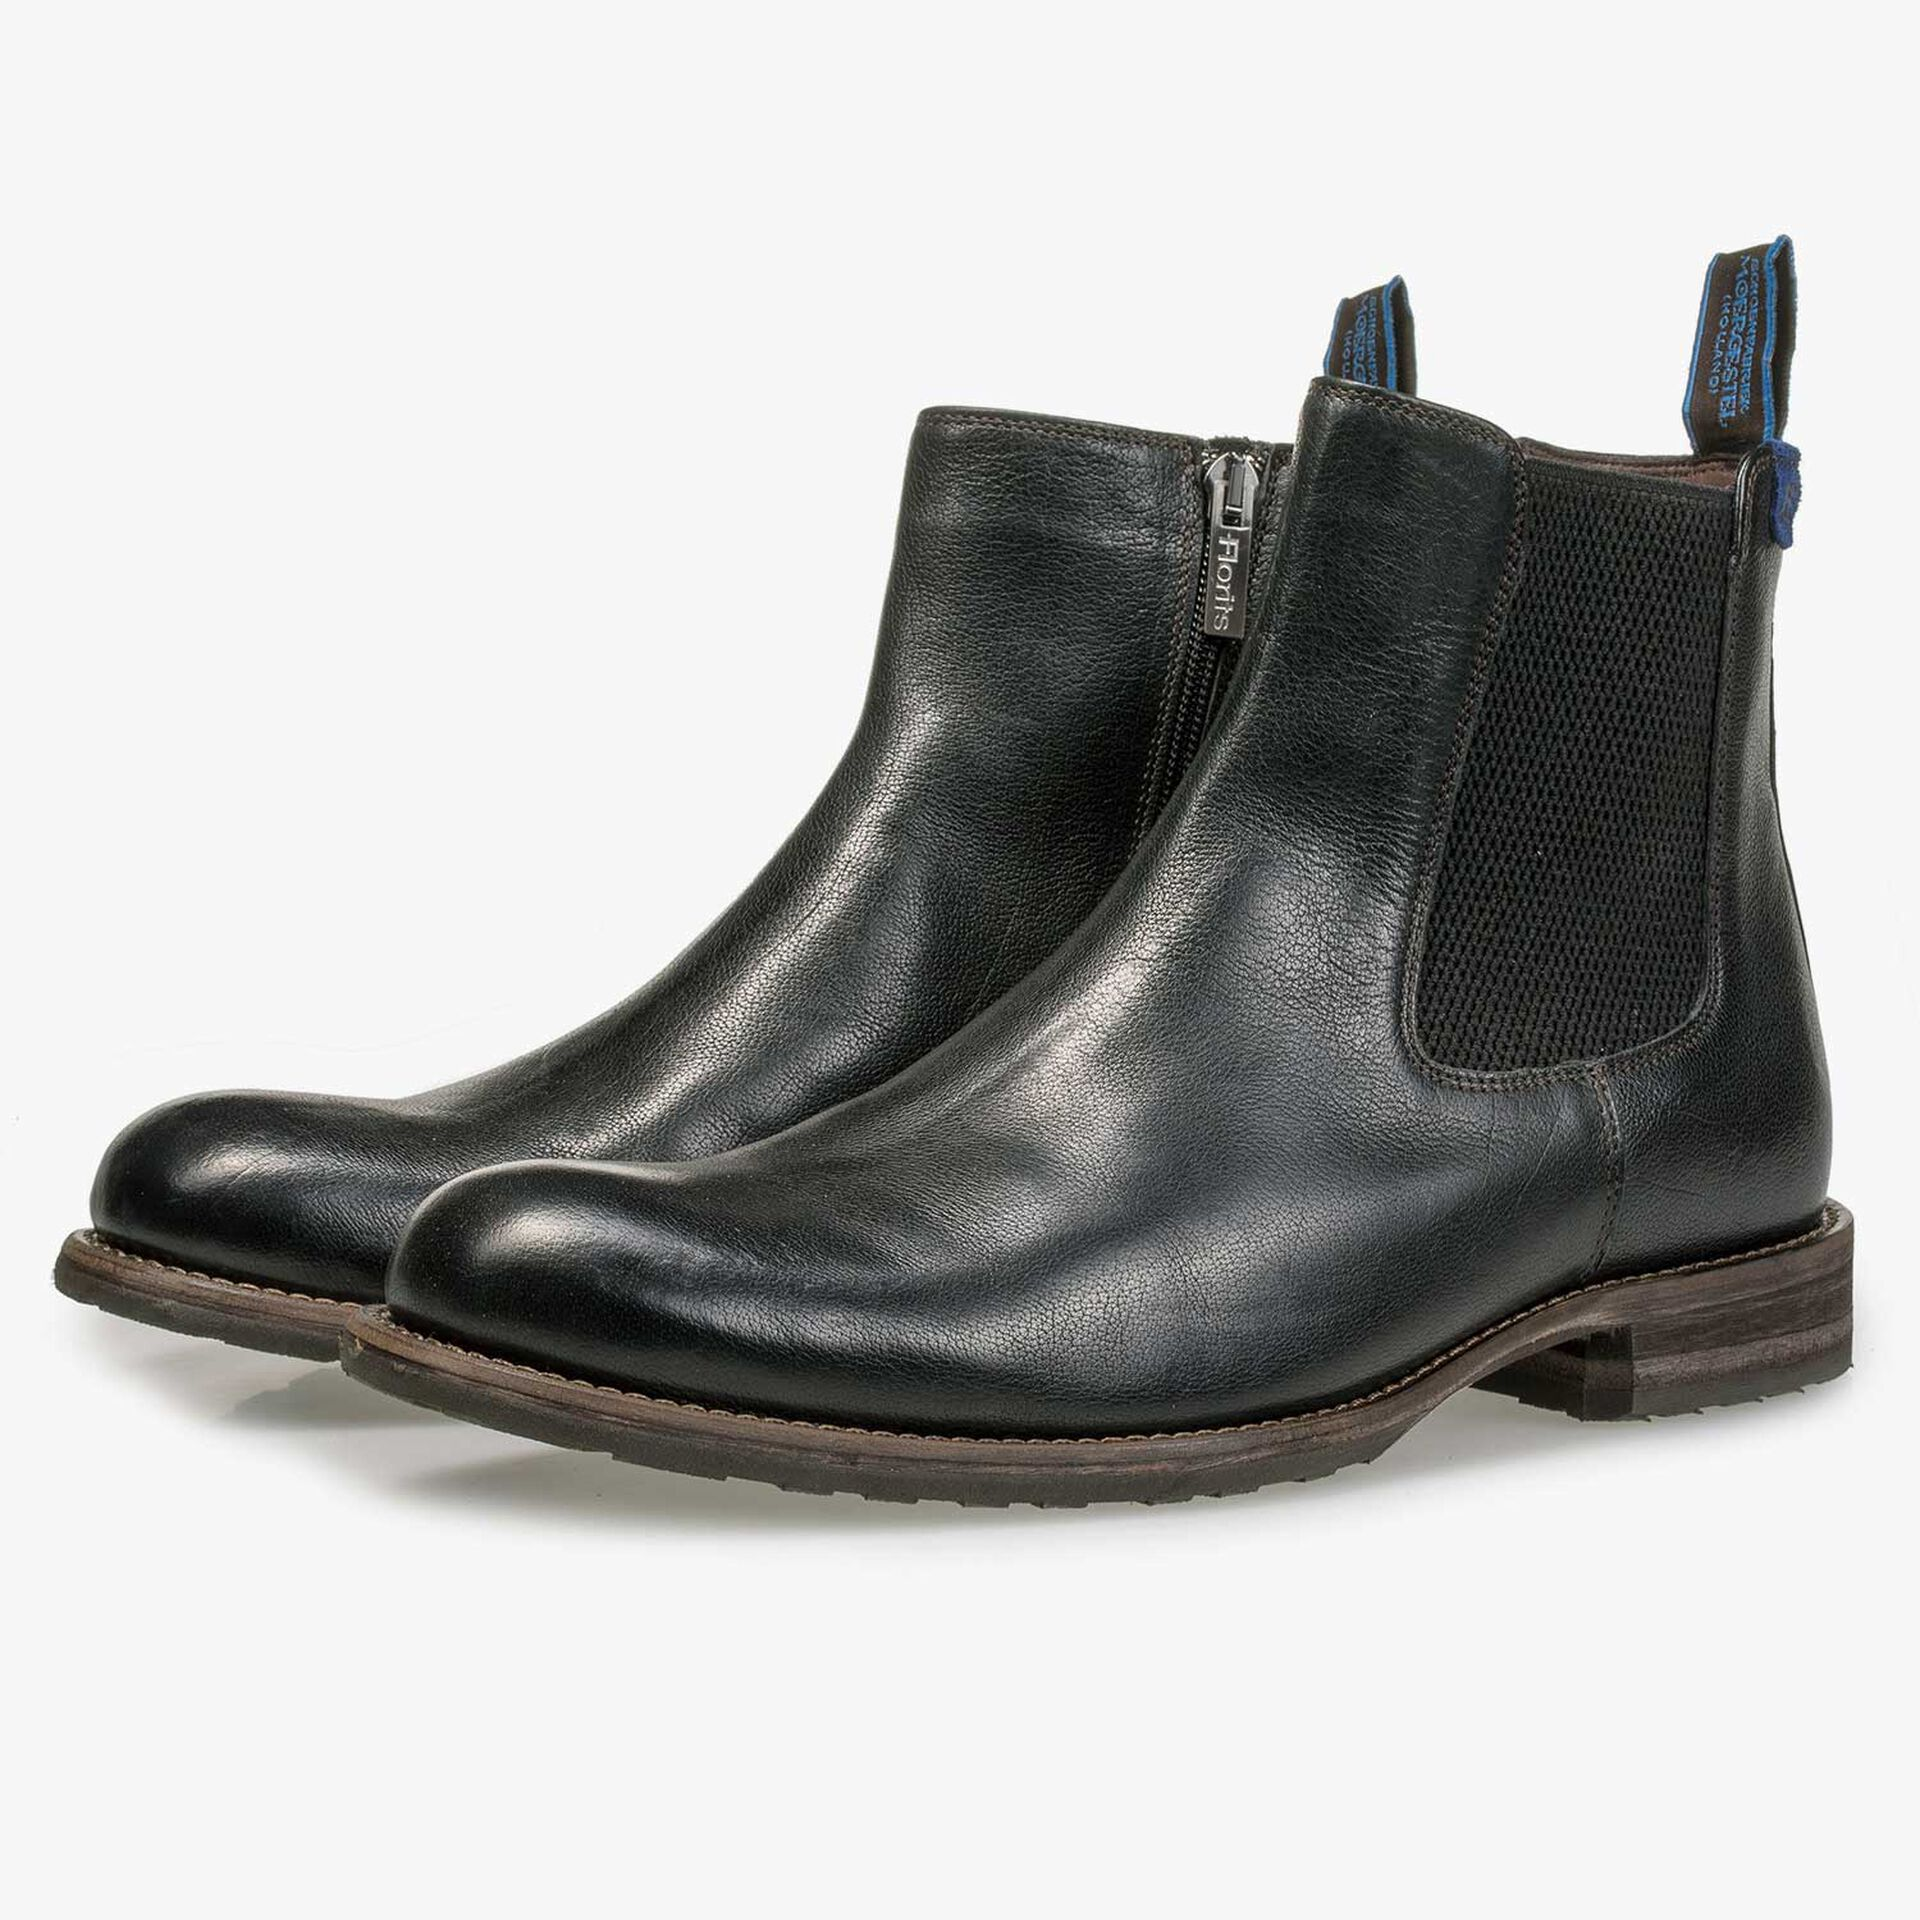 Black wool lined leather Chelsea boot